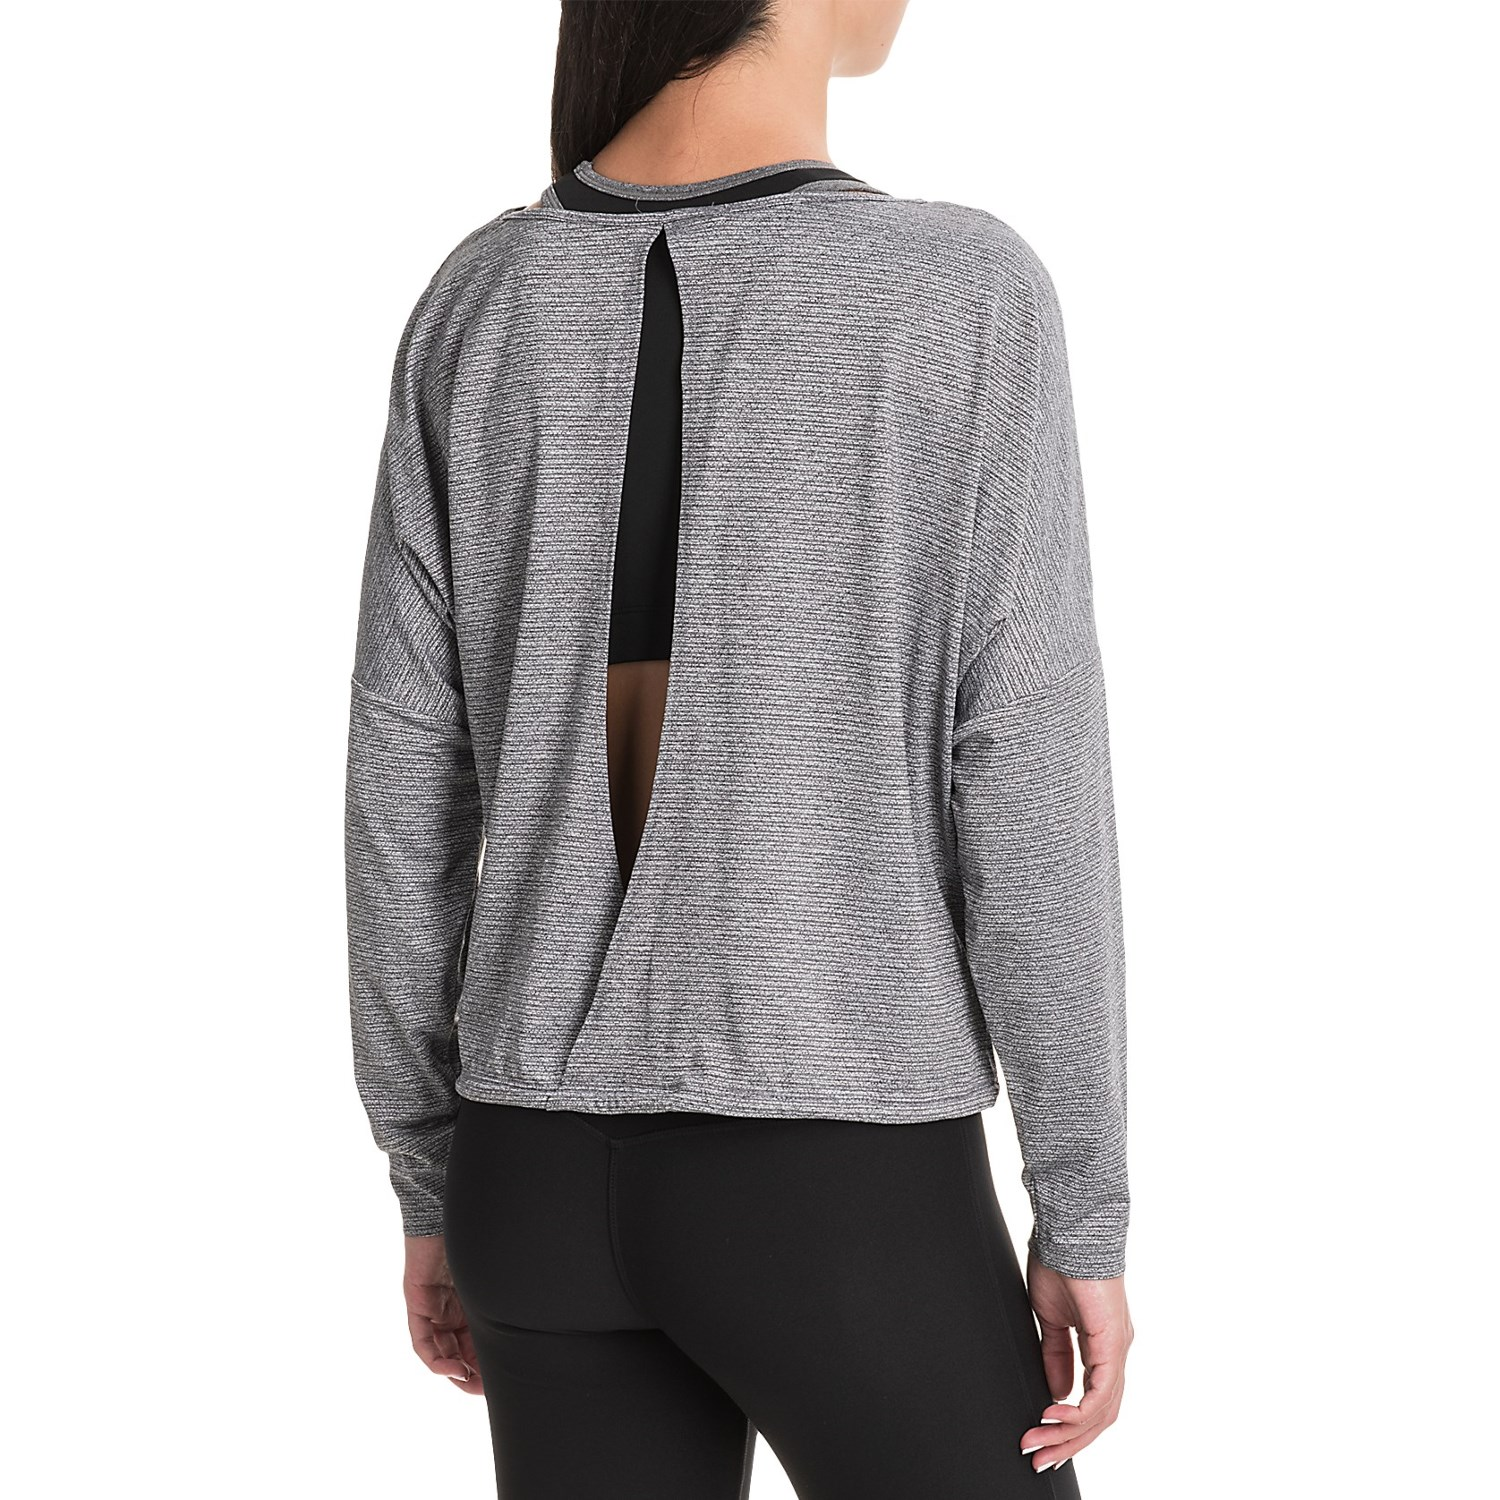 Manduka kosha open back shirt for women save 62 for Long sleeve open shirt